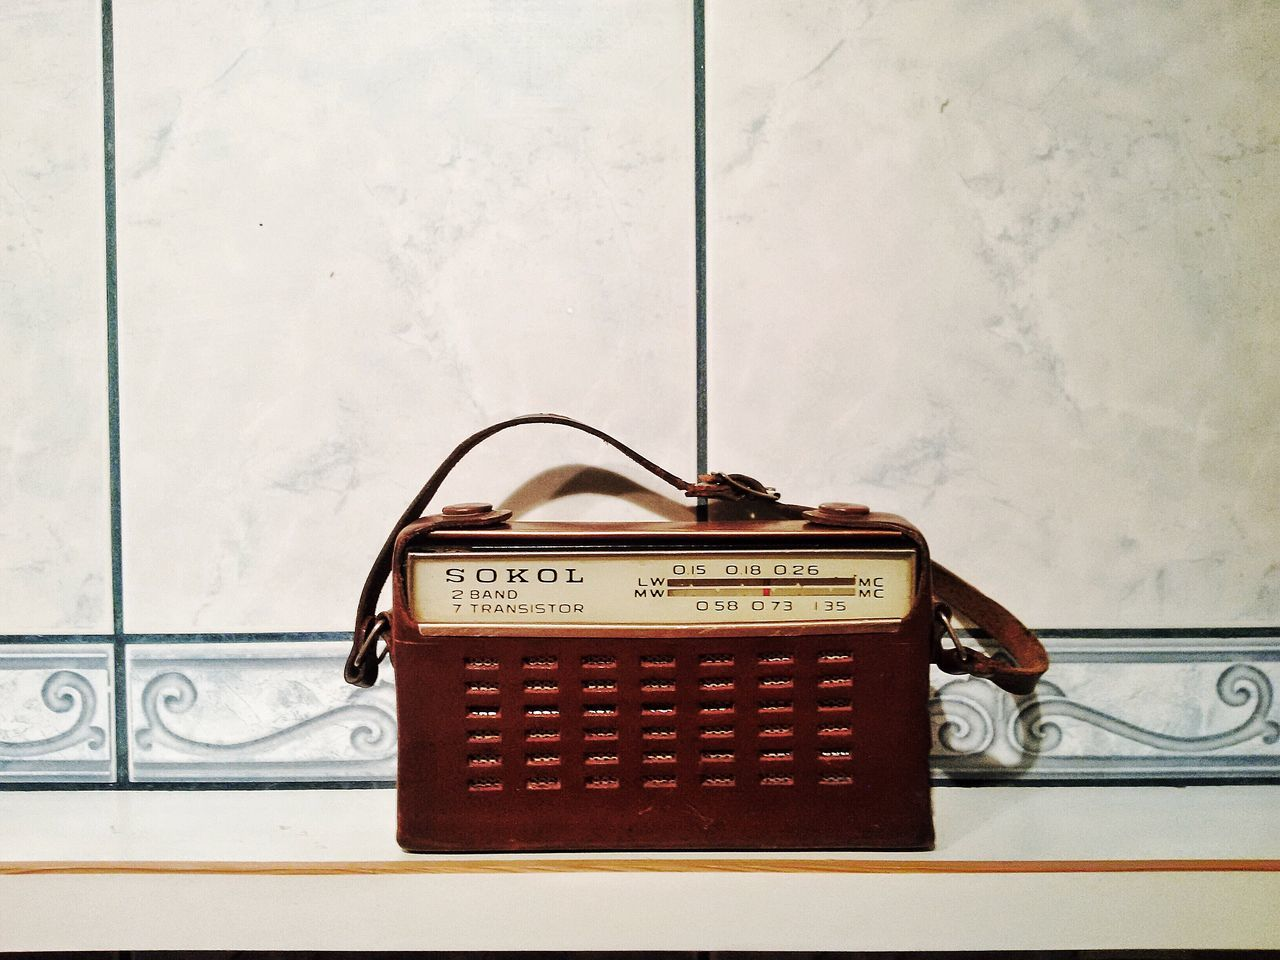 Retro Styled TakeoverMusic Music Analog Antique Old Old-fashioned Radio SOKOL